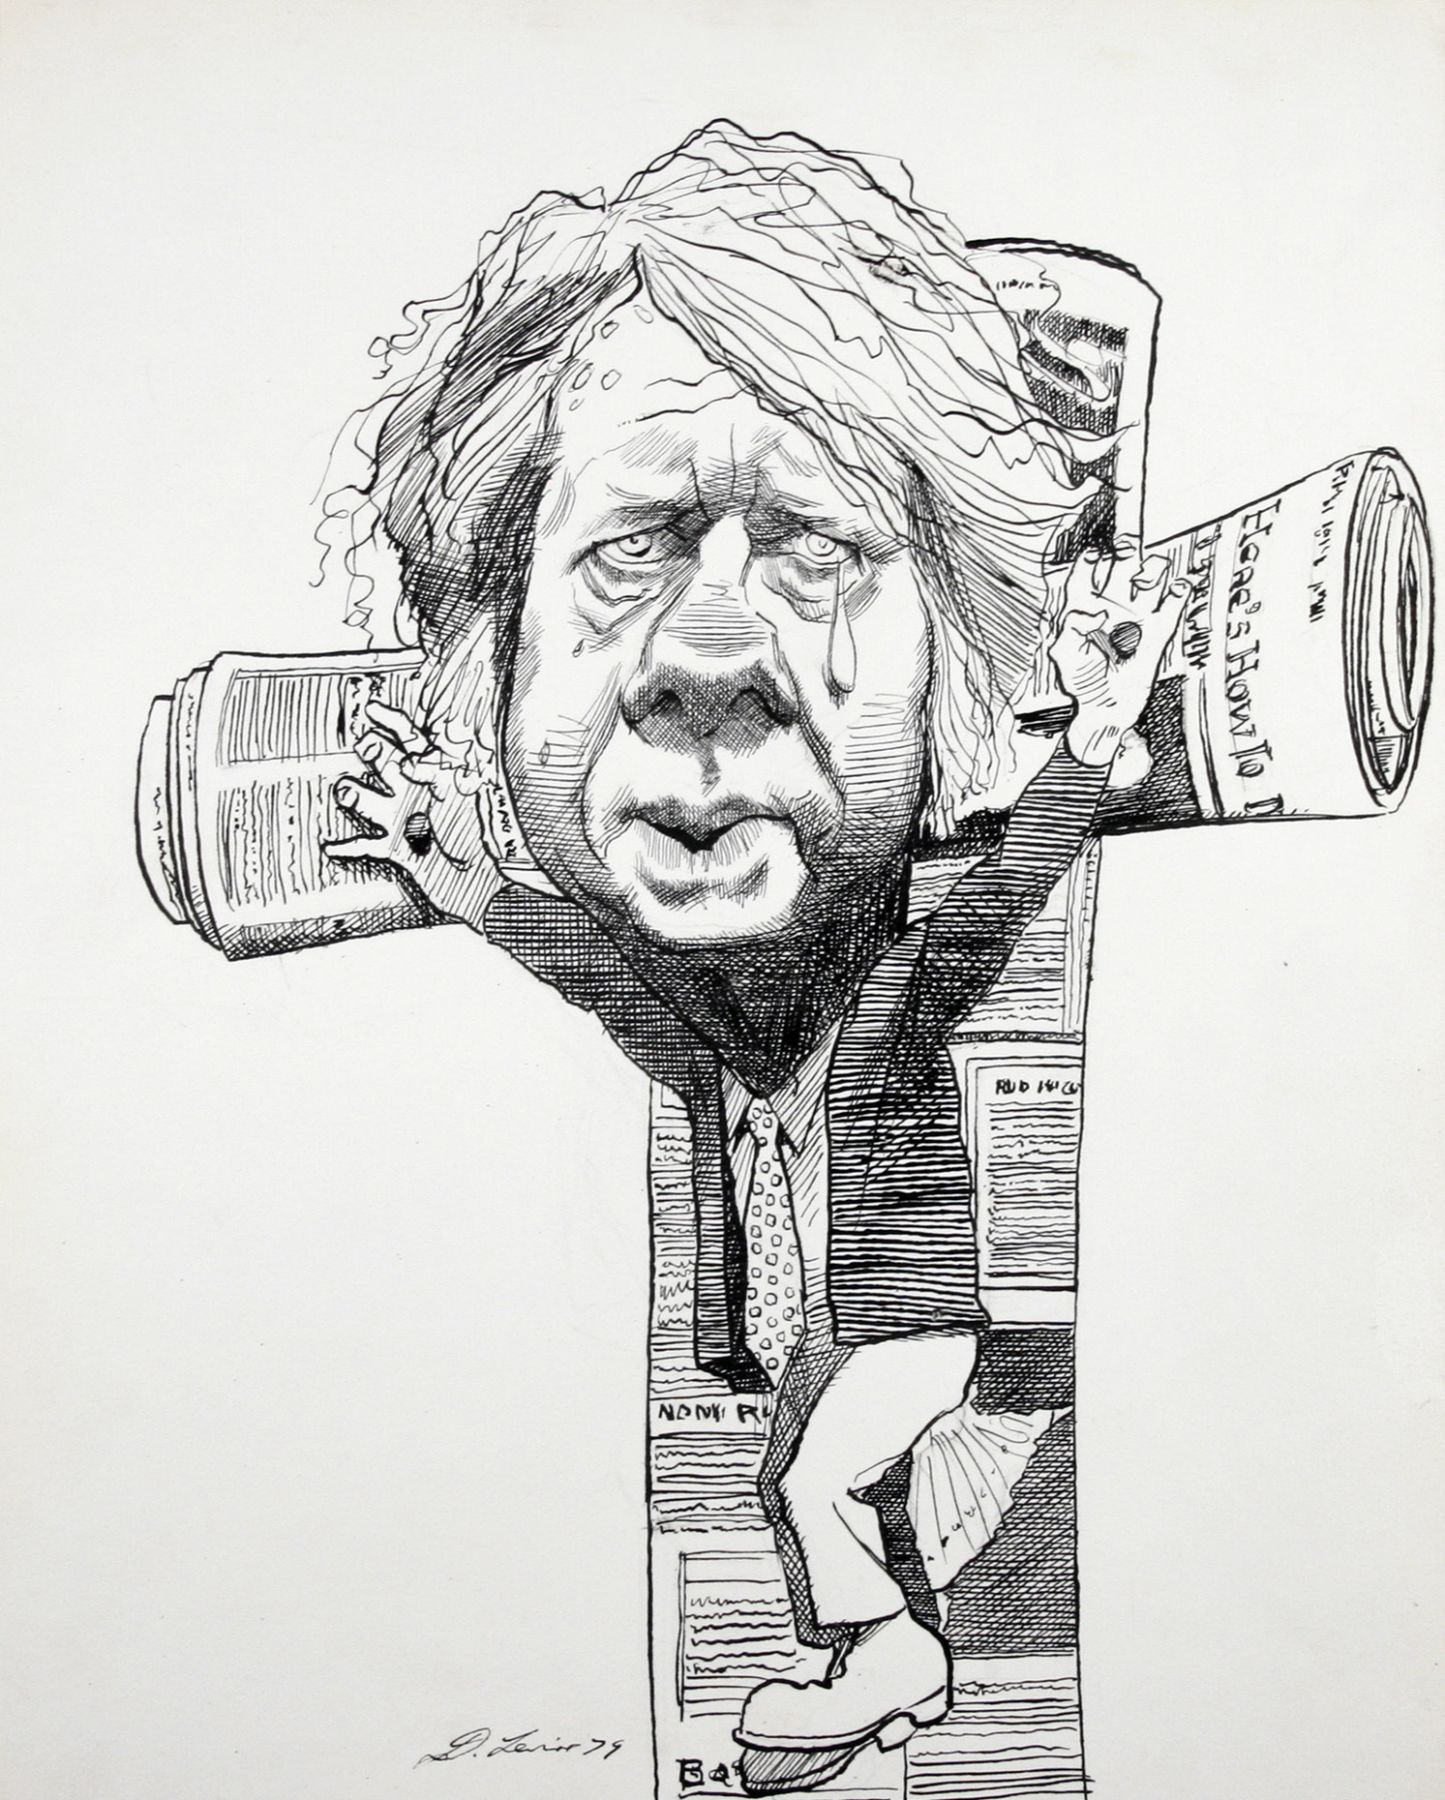 David Levine, Jimmy Carter- Crucifix, 1979, ink on paper, 13 x 11 inches